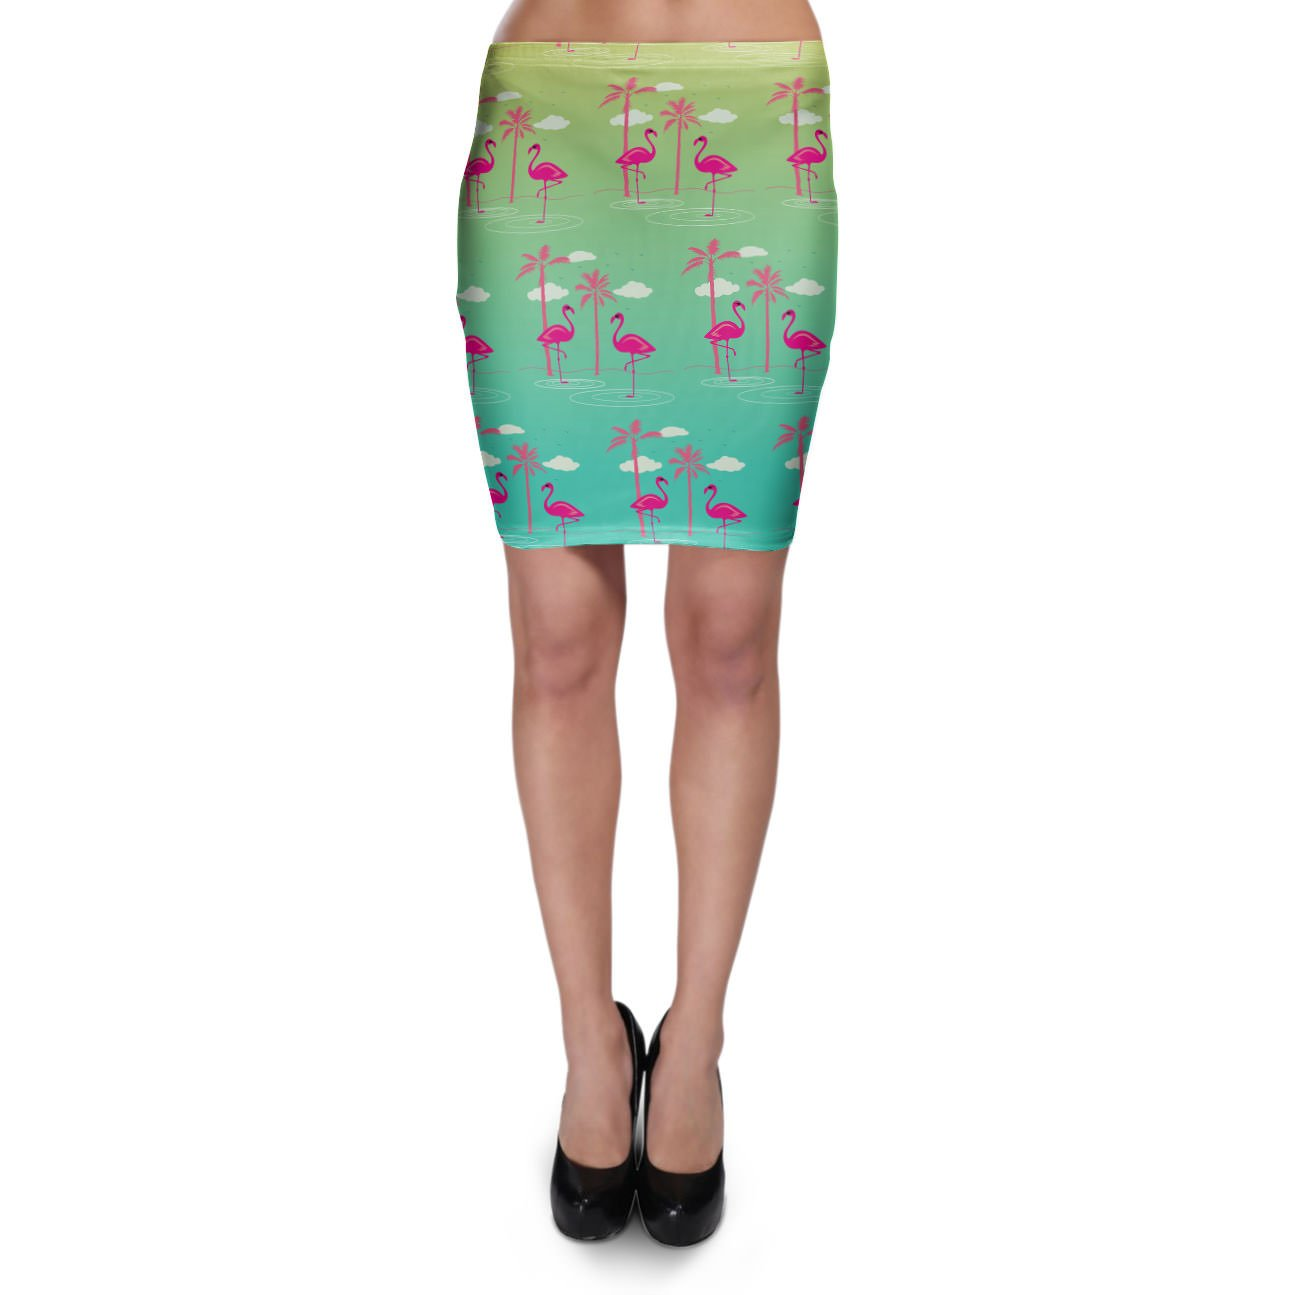 Flamingos in Sunglasses Bodycon Skirt - XS